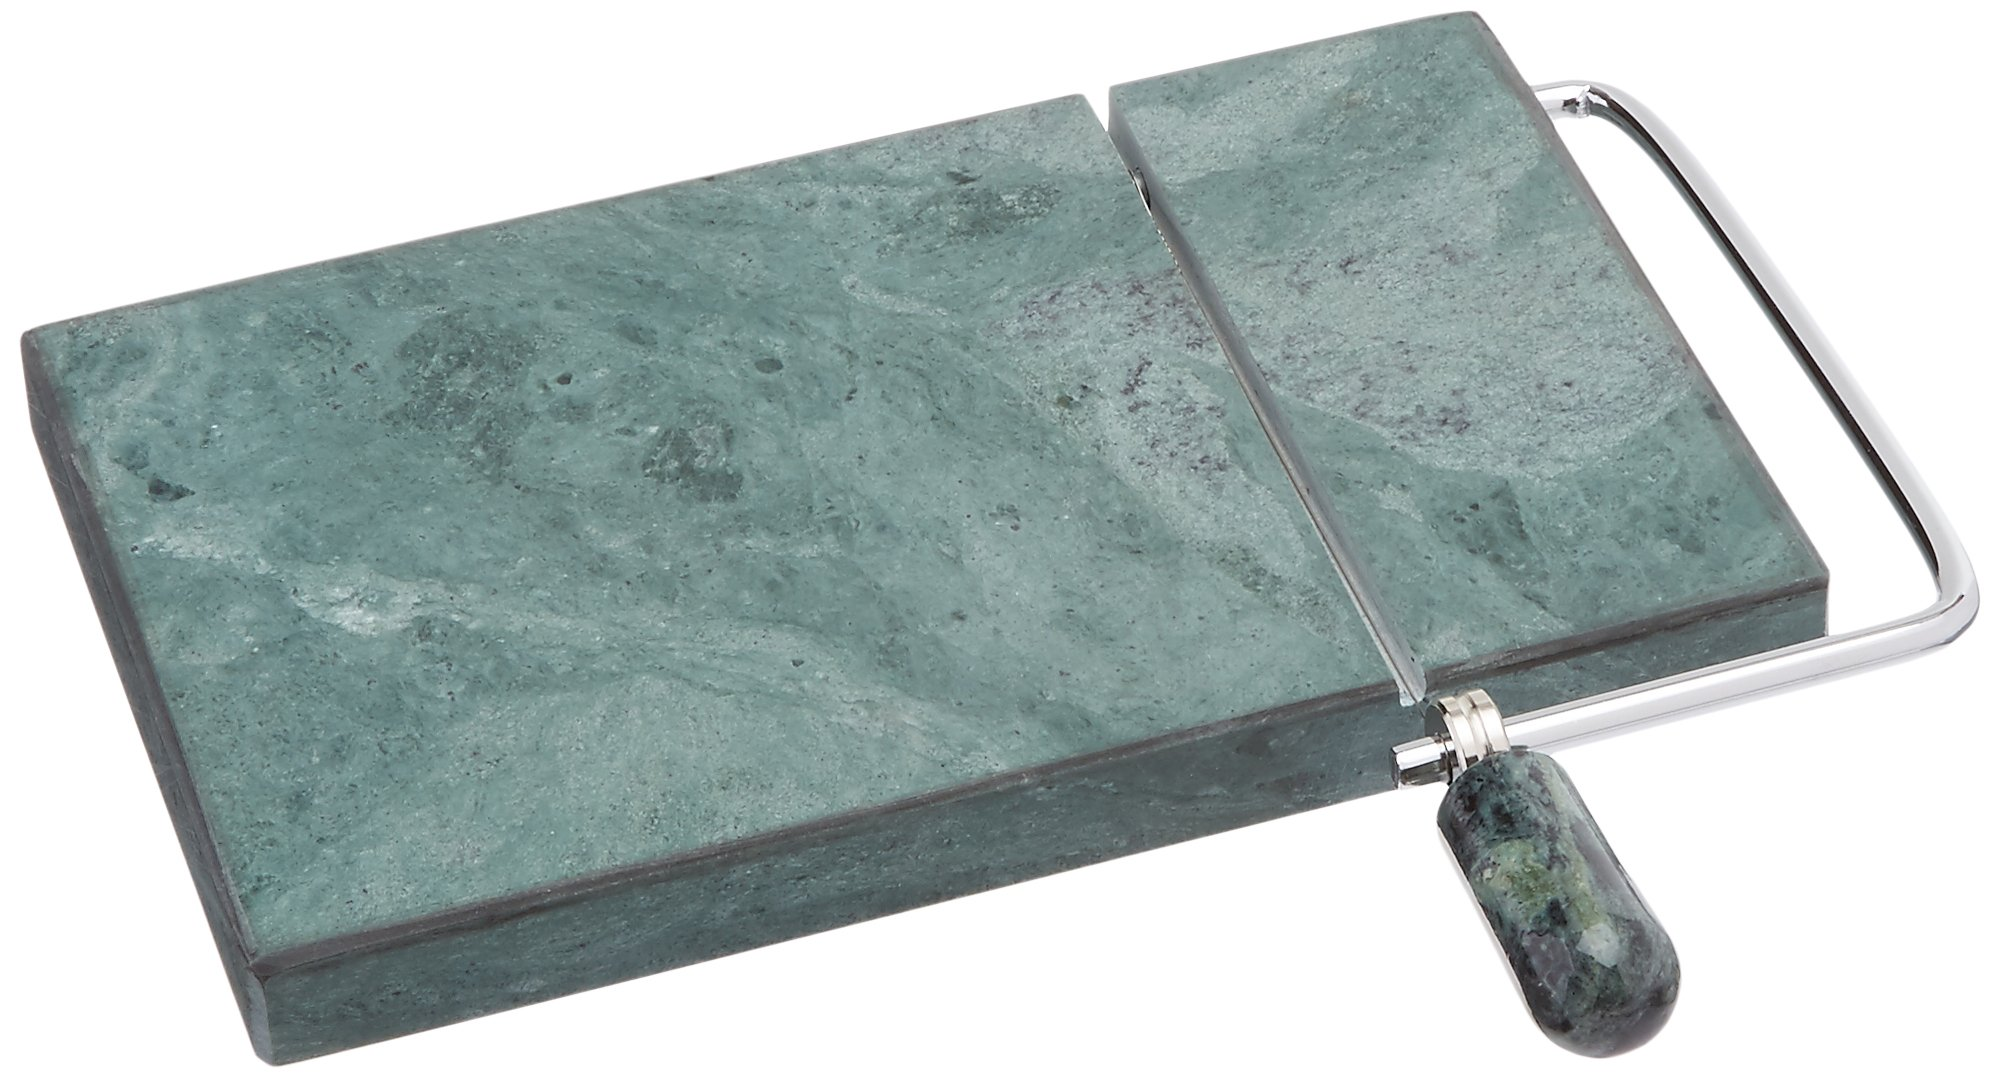 Creative Home Genuine Marble Stone 5 by 8'' Cheese Slicer, Cutter, Green